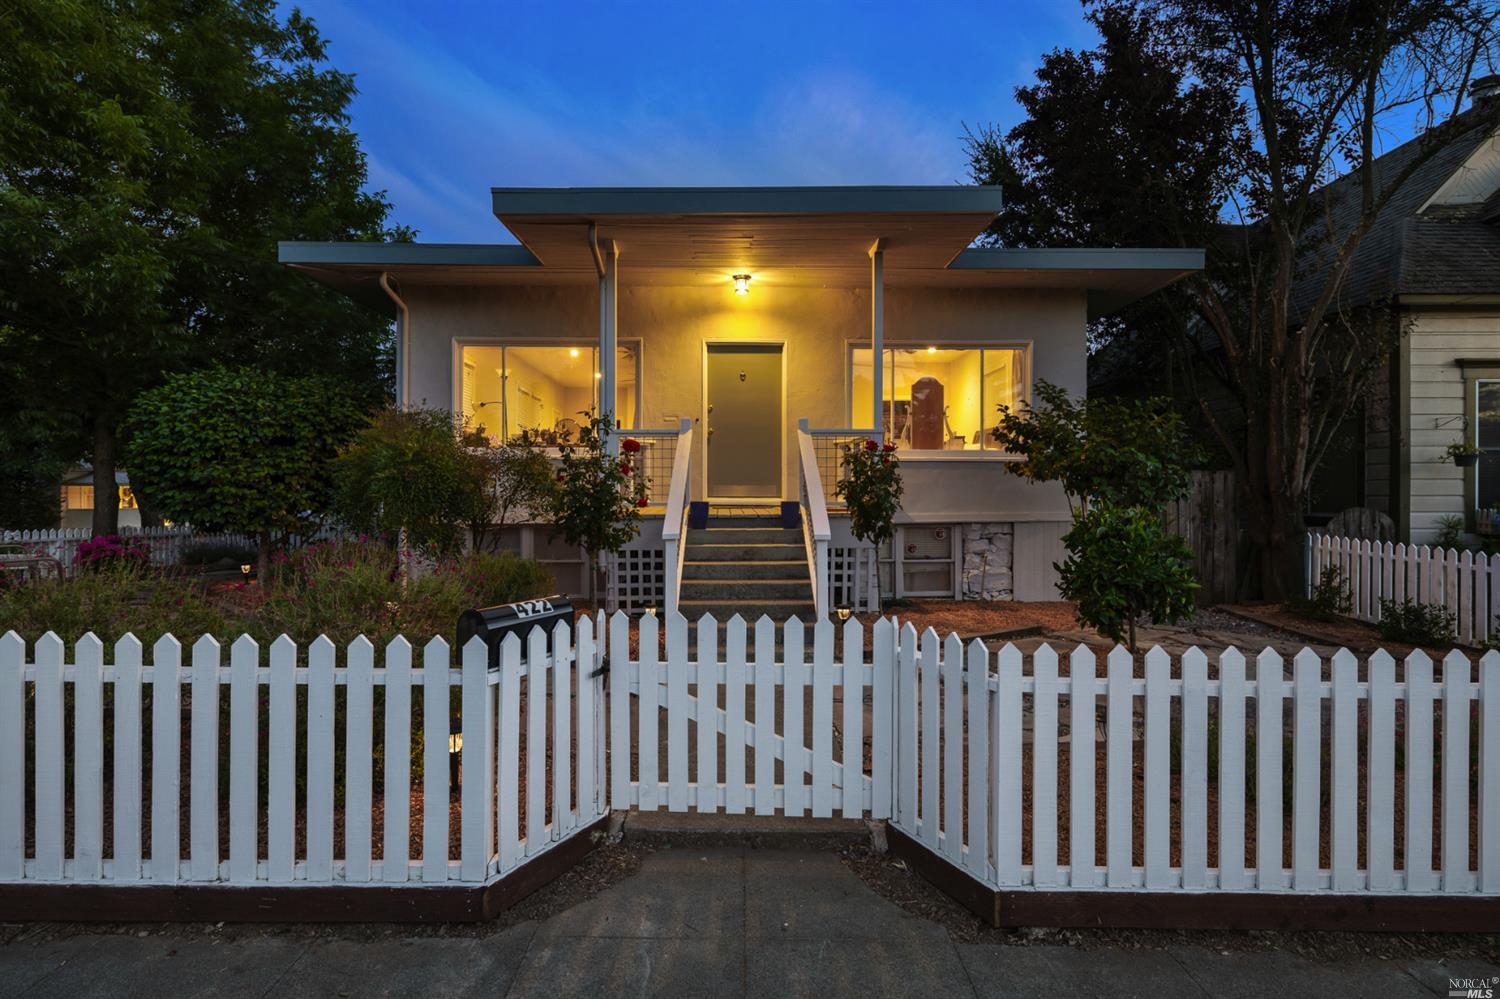 This turn-key triplex is located just a short walk to the famed Healdsburg Plaza.  Consisting of a 3 bed/1 bath unit, a 2 bed/1 bath unit, a 1 bed/1 bath unit, plus a non-conforming studio, this is a rare option for an owner/occupant with additional income potential. Upgraded with a new roof, fresh paint and landscaping, this property is located among high-end residences and offers steady income.